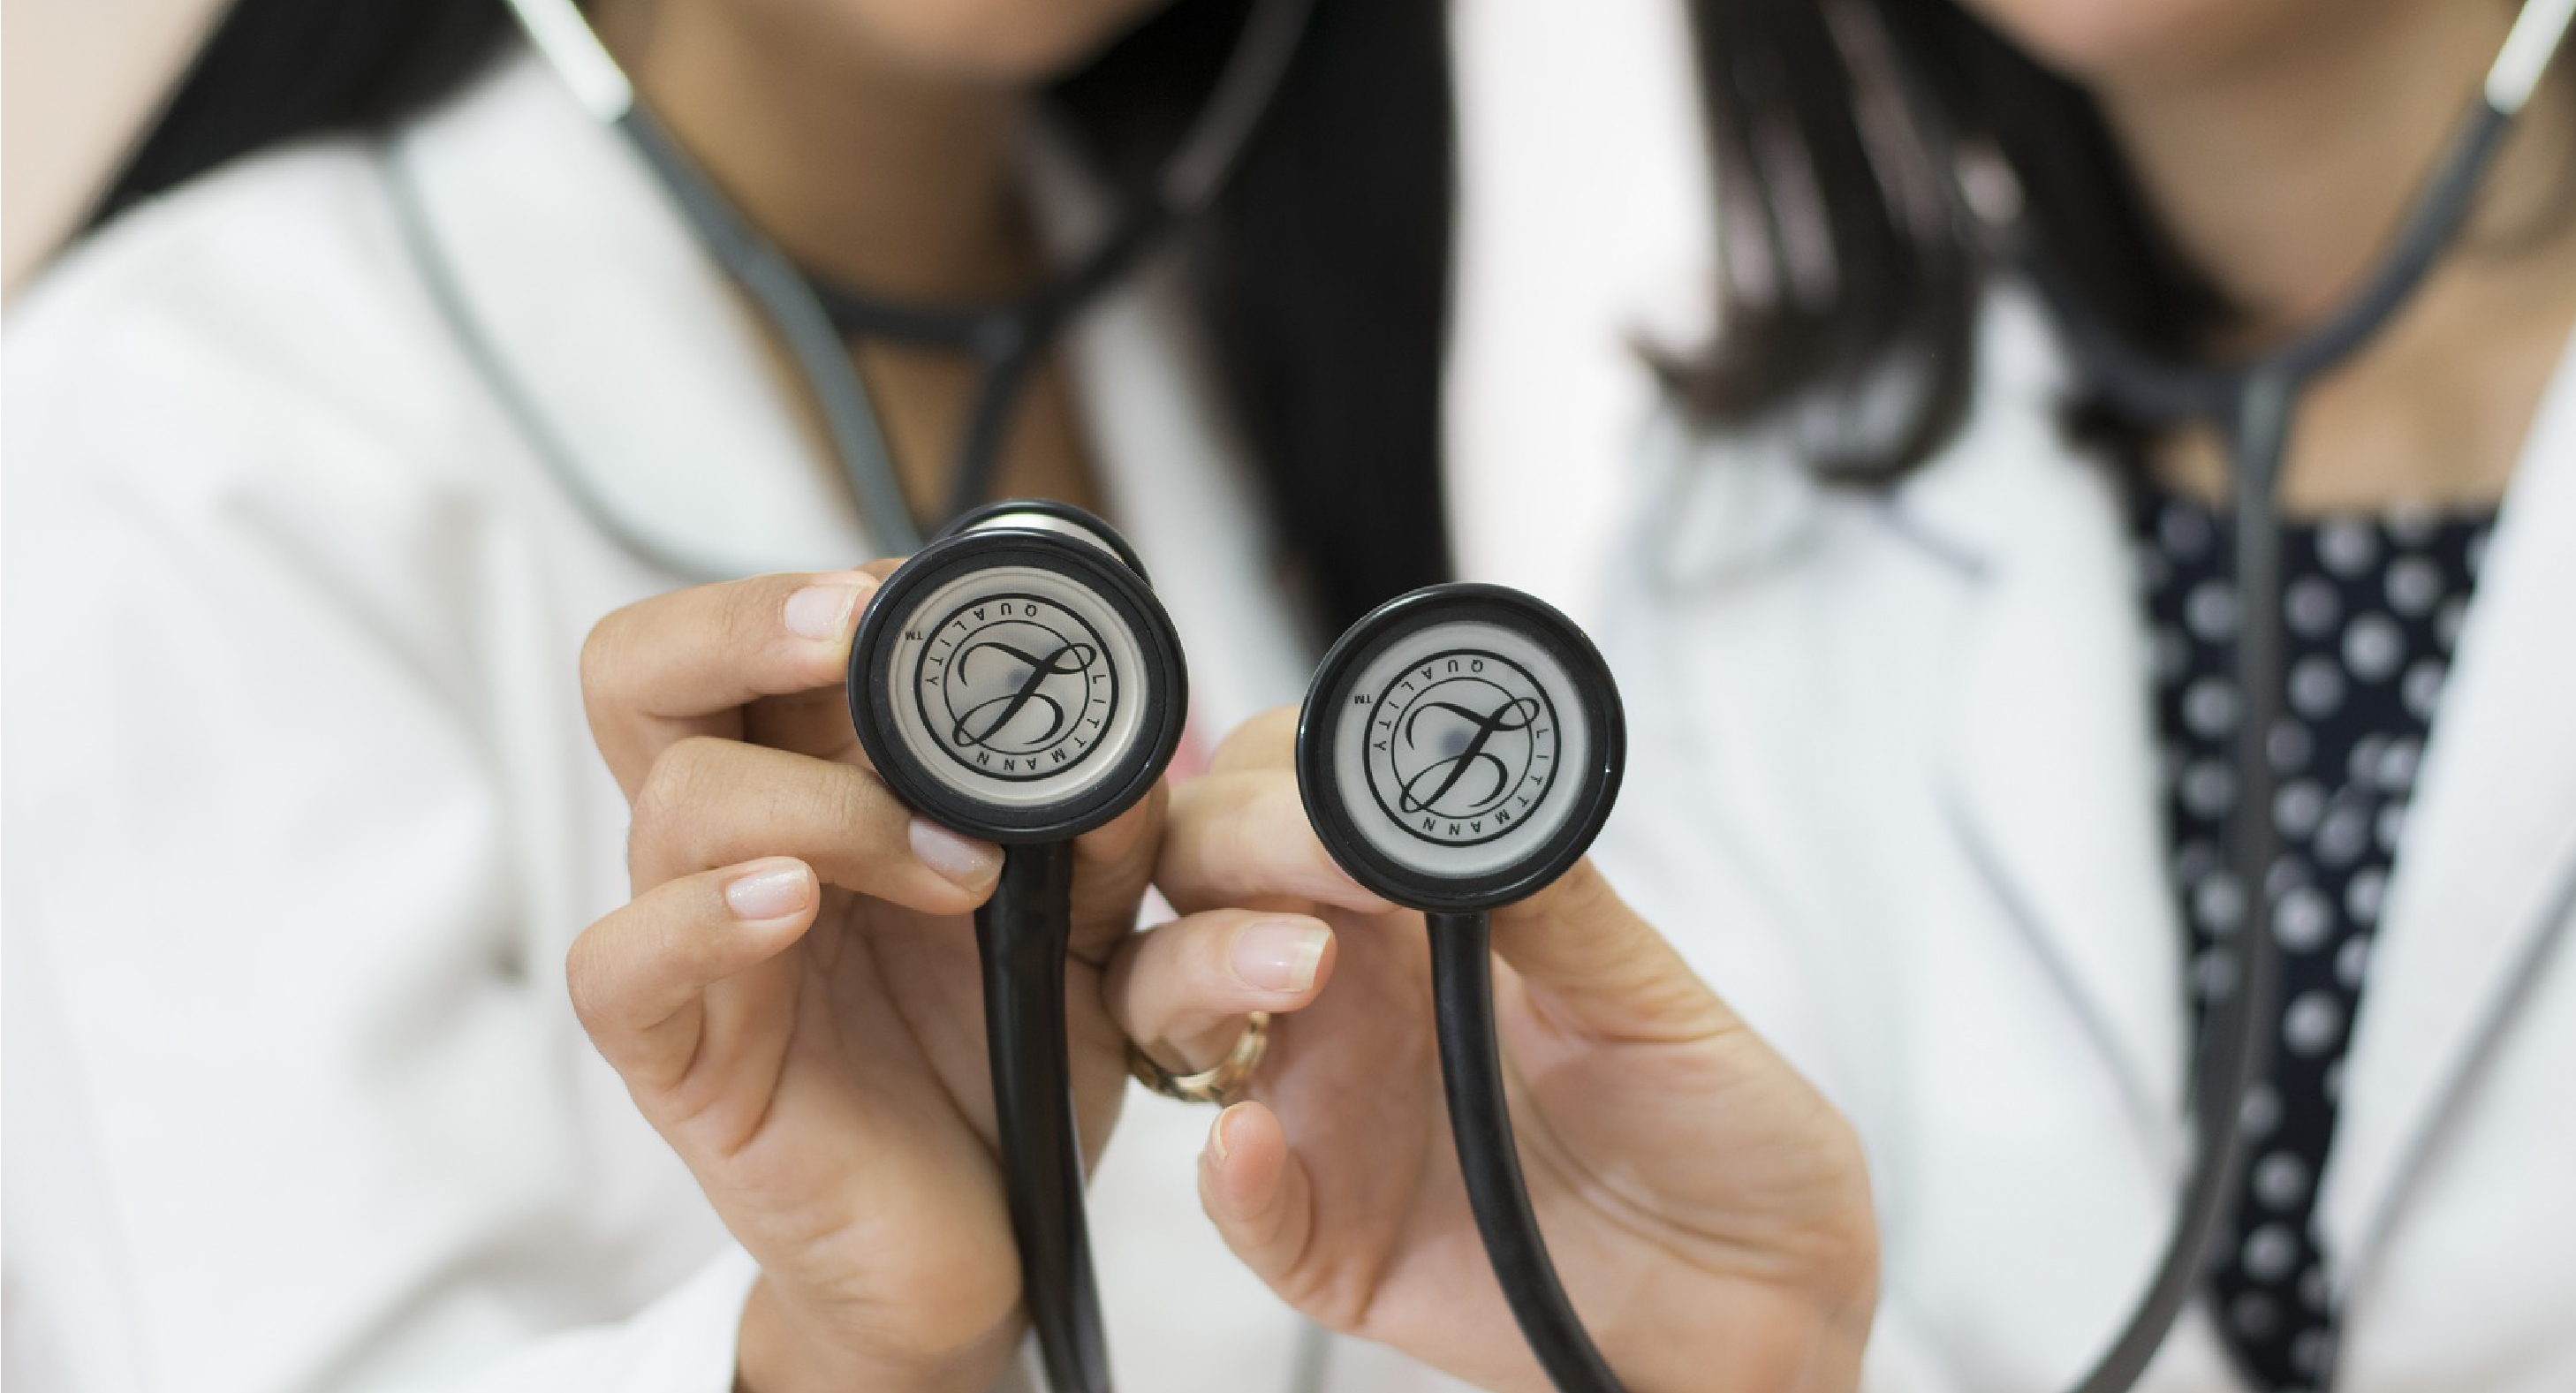 Merchant Capital, Discovery Health to assist struggling healthcare practices